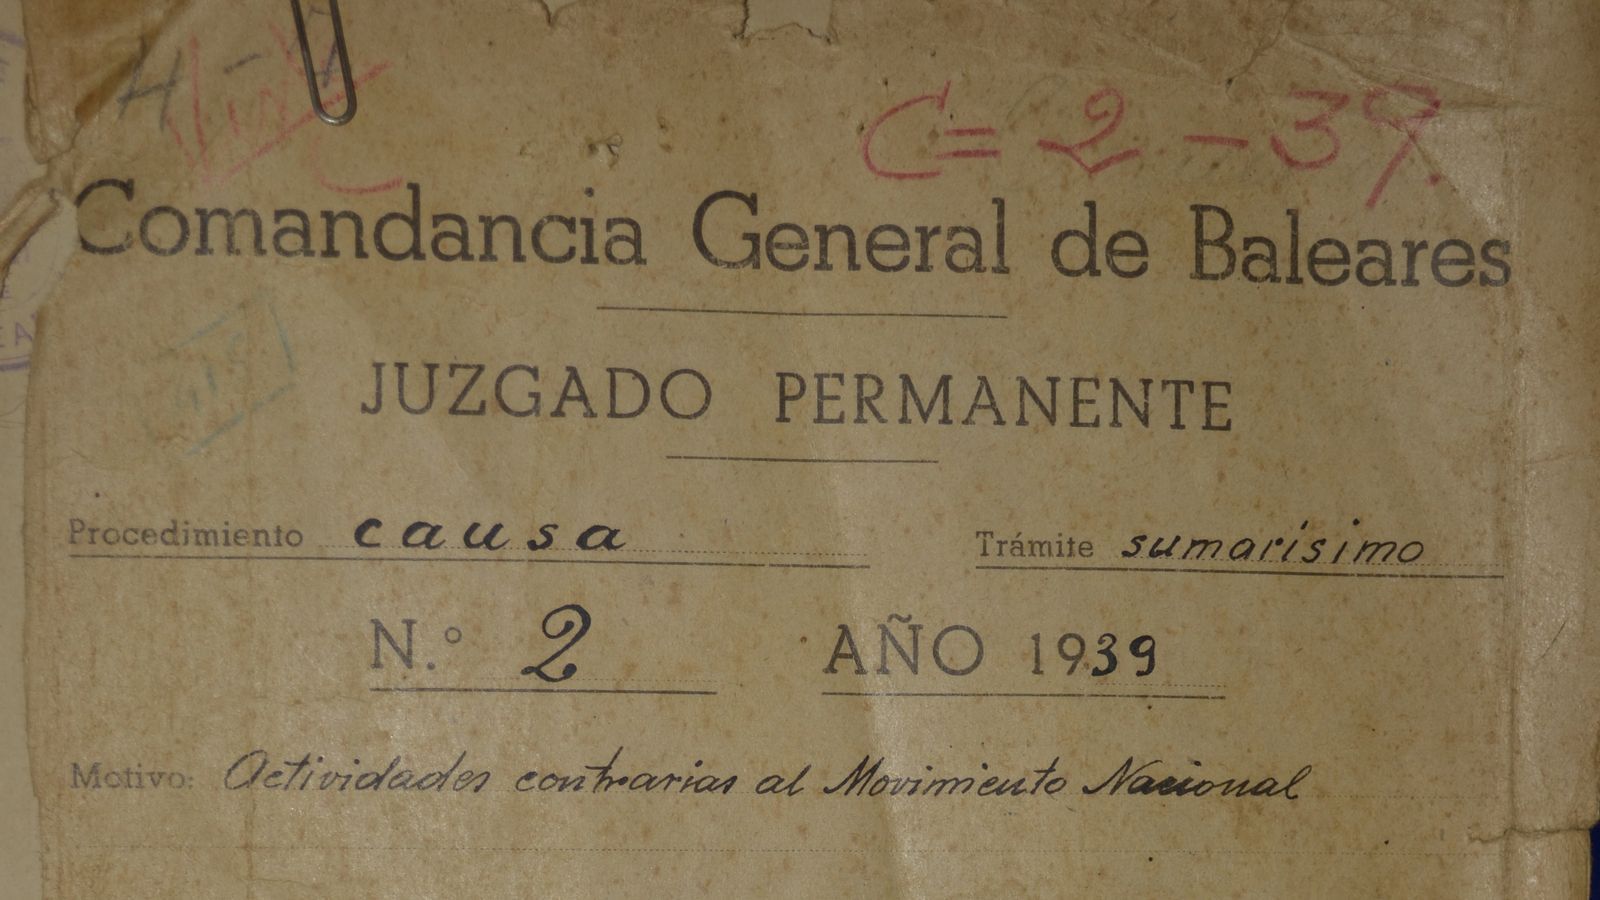 Document d'una causa judicial de 1939